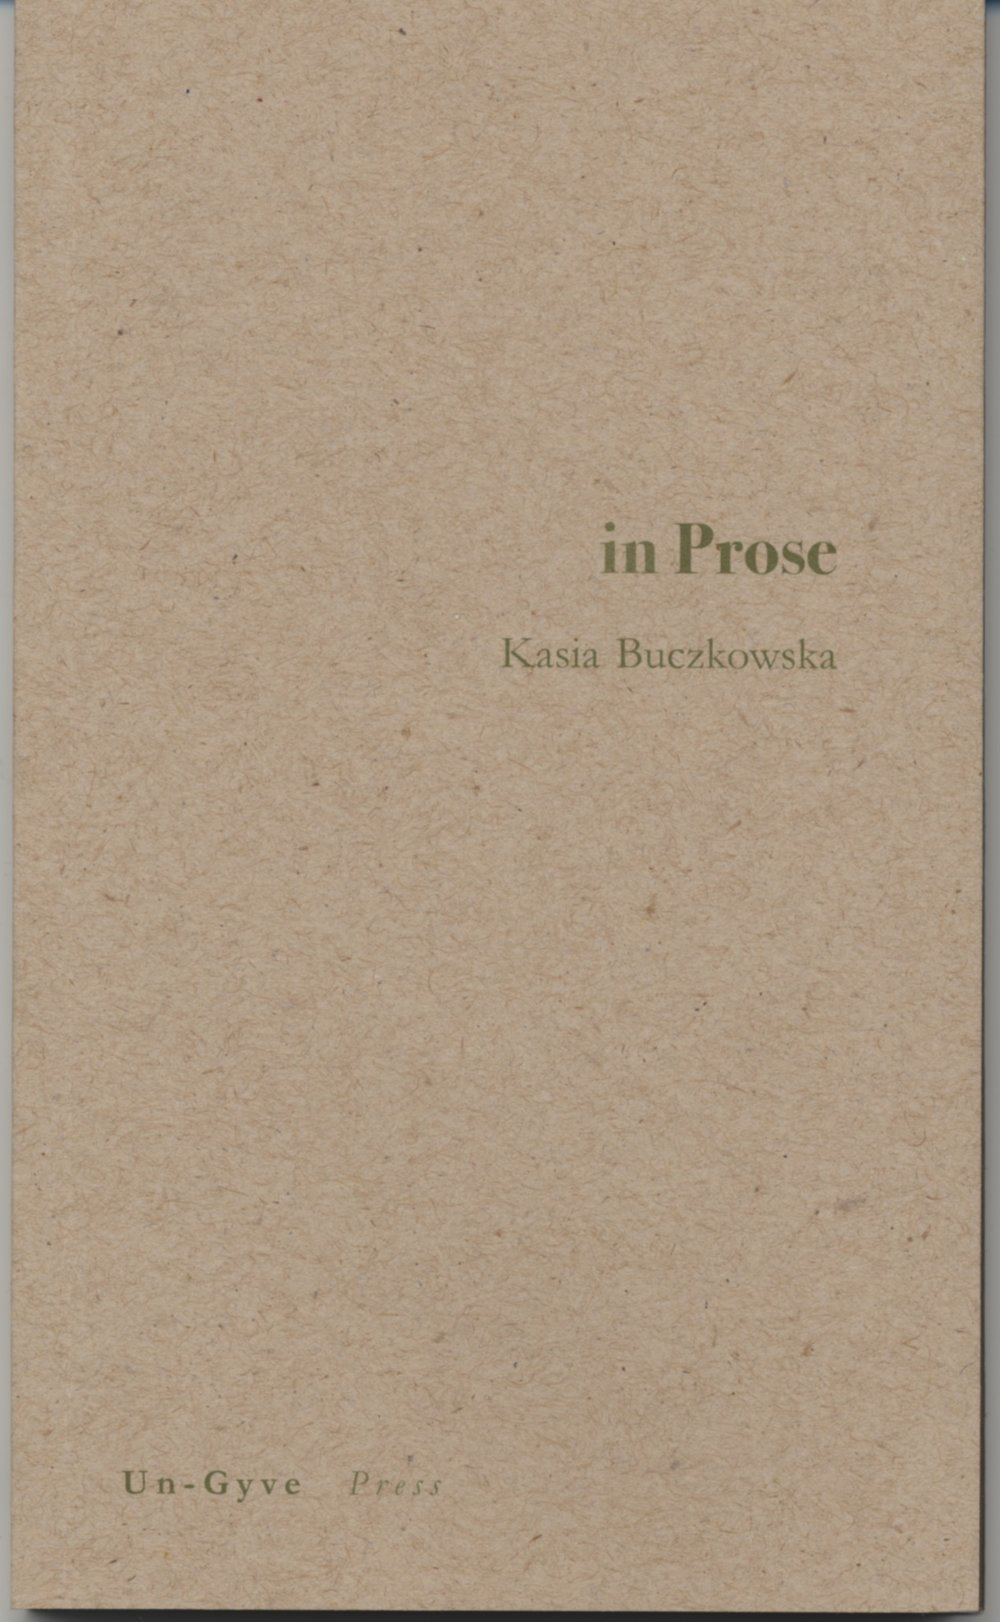 """in Prose, Kasia Buczkowska's first book is a collection of """"short takes,"""" so named by Rosanna Warren - with a quality of foreignness to the voice that forms quirky folk-tales and vignettes, urban and pastoral, in Prose. A 78 page softcover from Un-Gyve Press; ISBN: 978-0-9829198-3-5. ( PRNewsFoto/Un-Gyve Press )"""